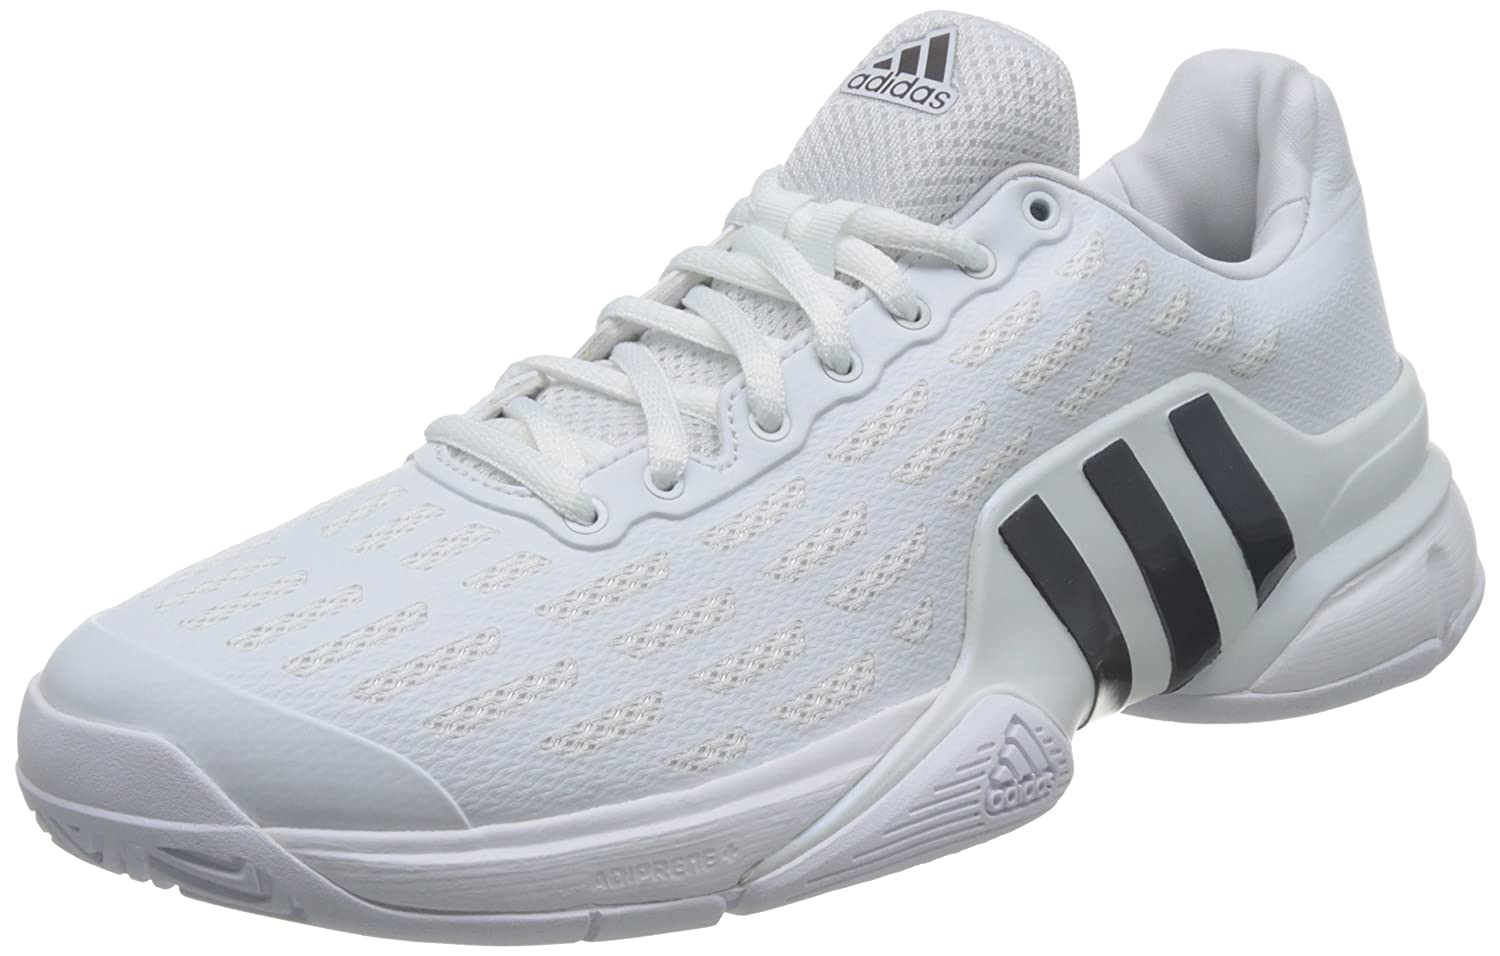 adidas Barricade 2016 Court Shoes